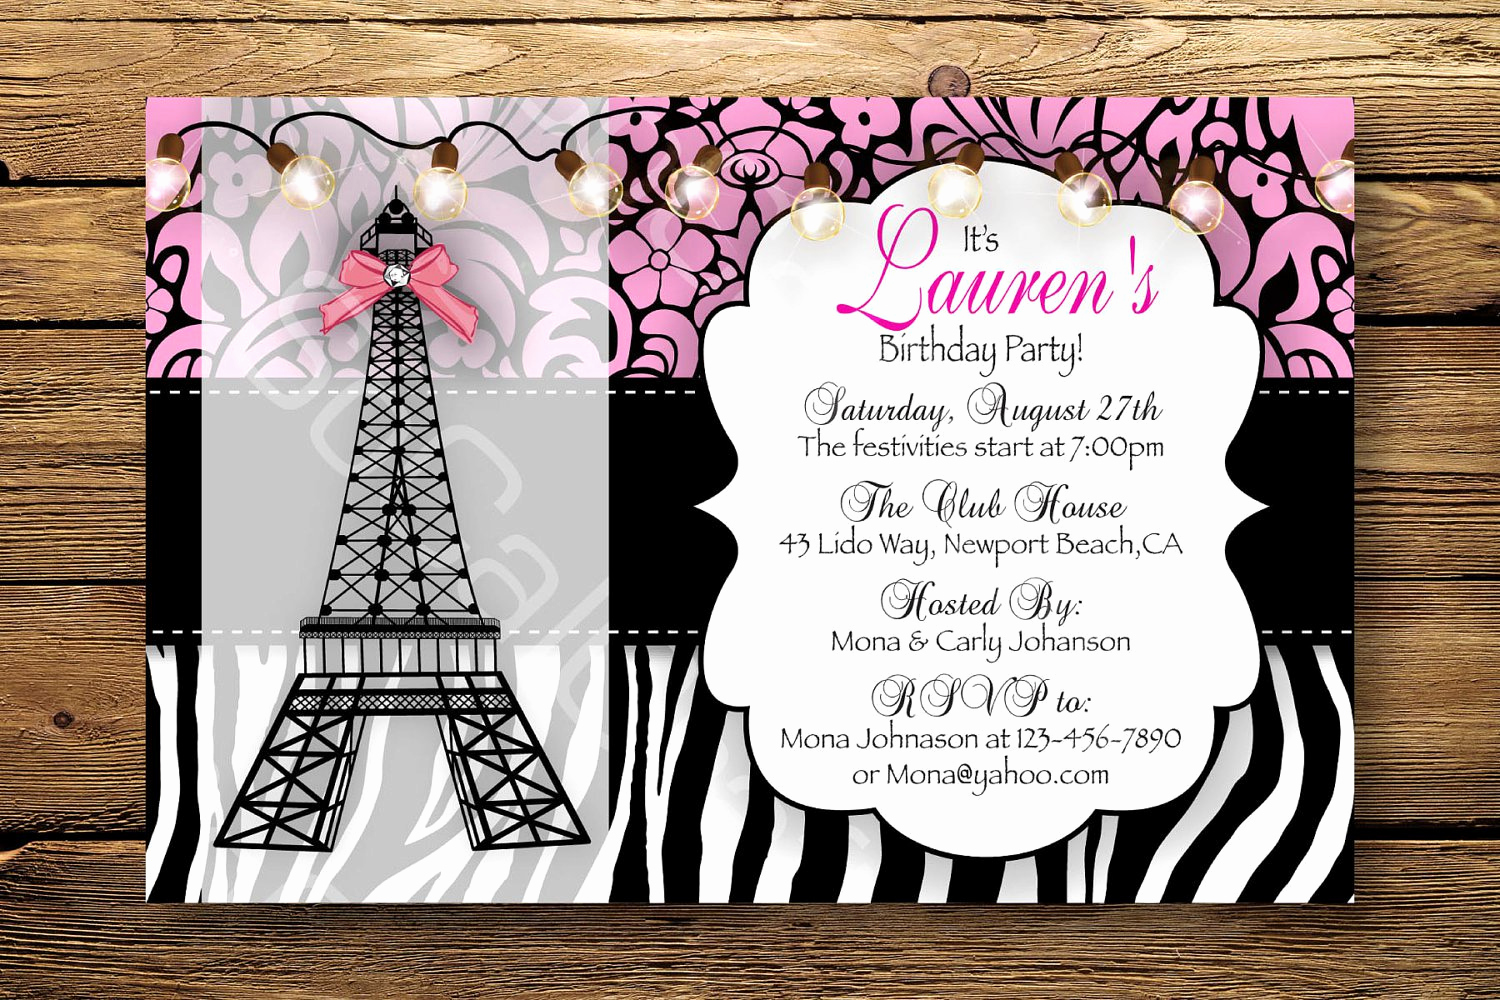 Paris themed Invitation Template New Paris themed Birthday Invitations